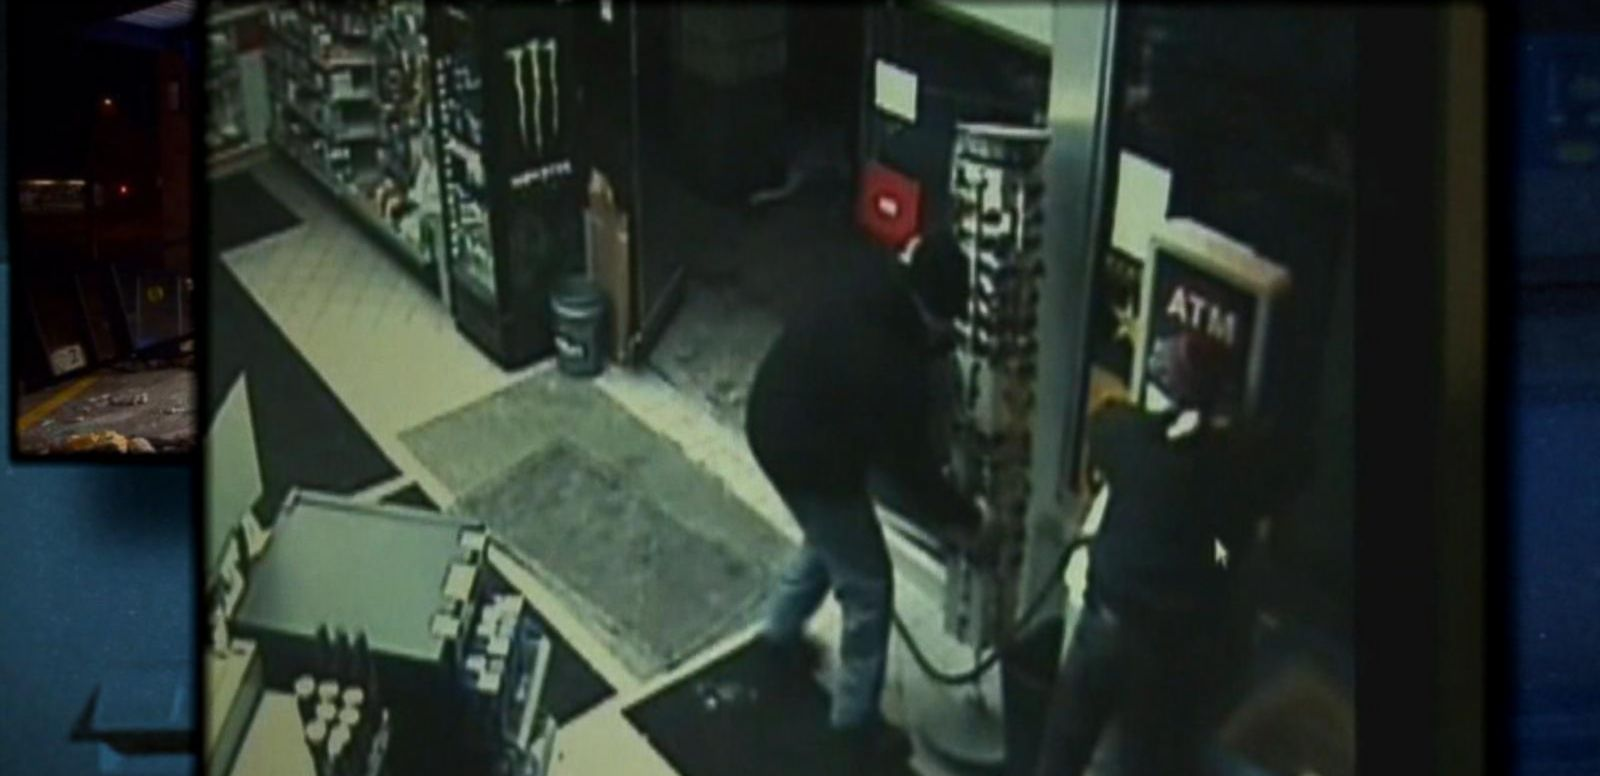 VIDEO: ATM Smash and Grab Thefts on the Rise in Dallas